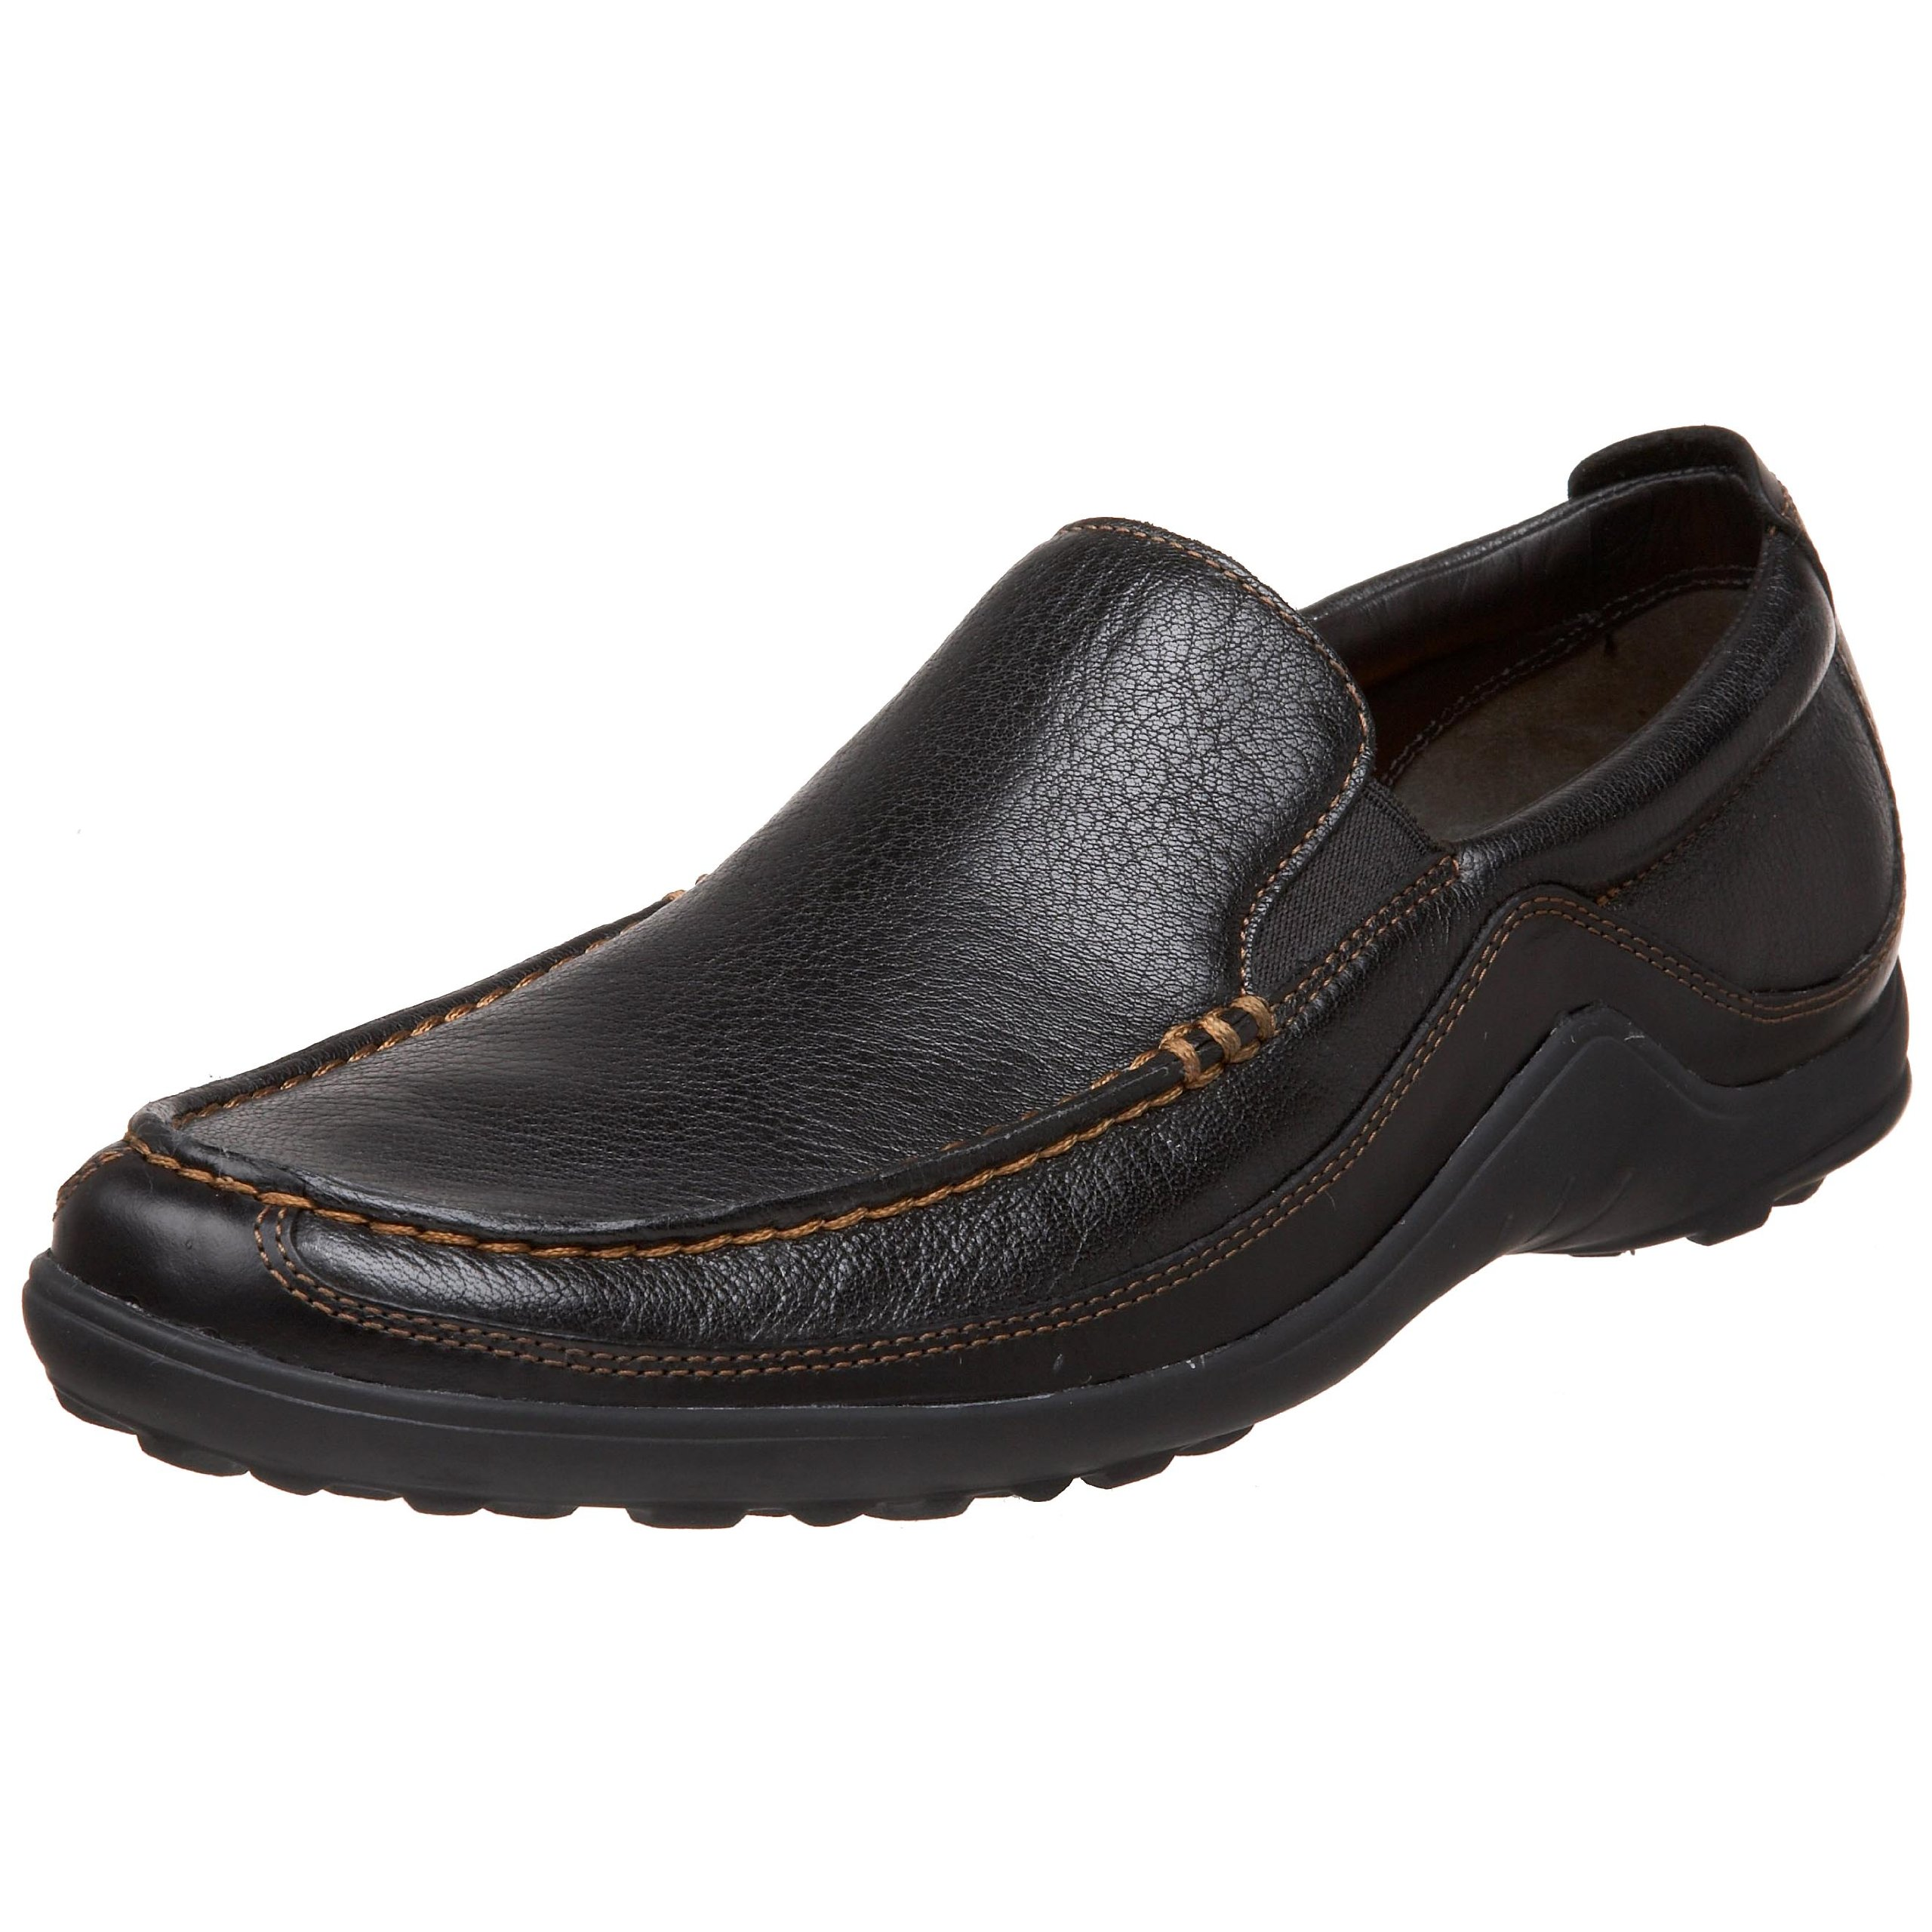 Cole Haan Men's Tucker Venetian LoaferBlack8 M US by Cole Haan